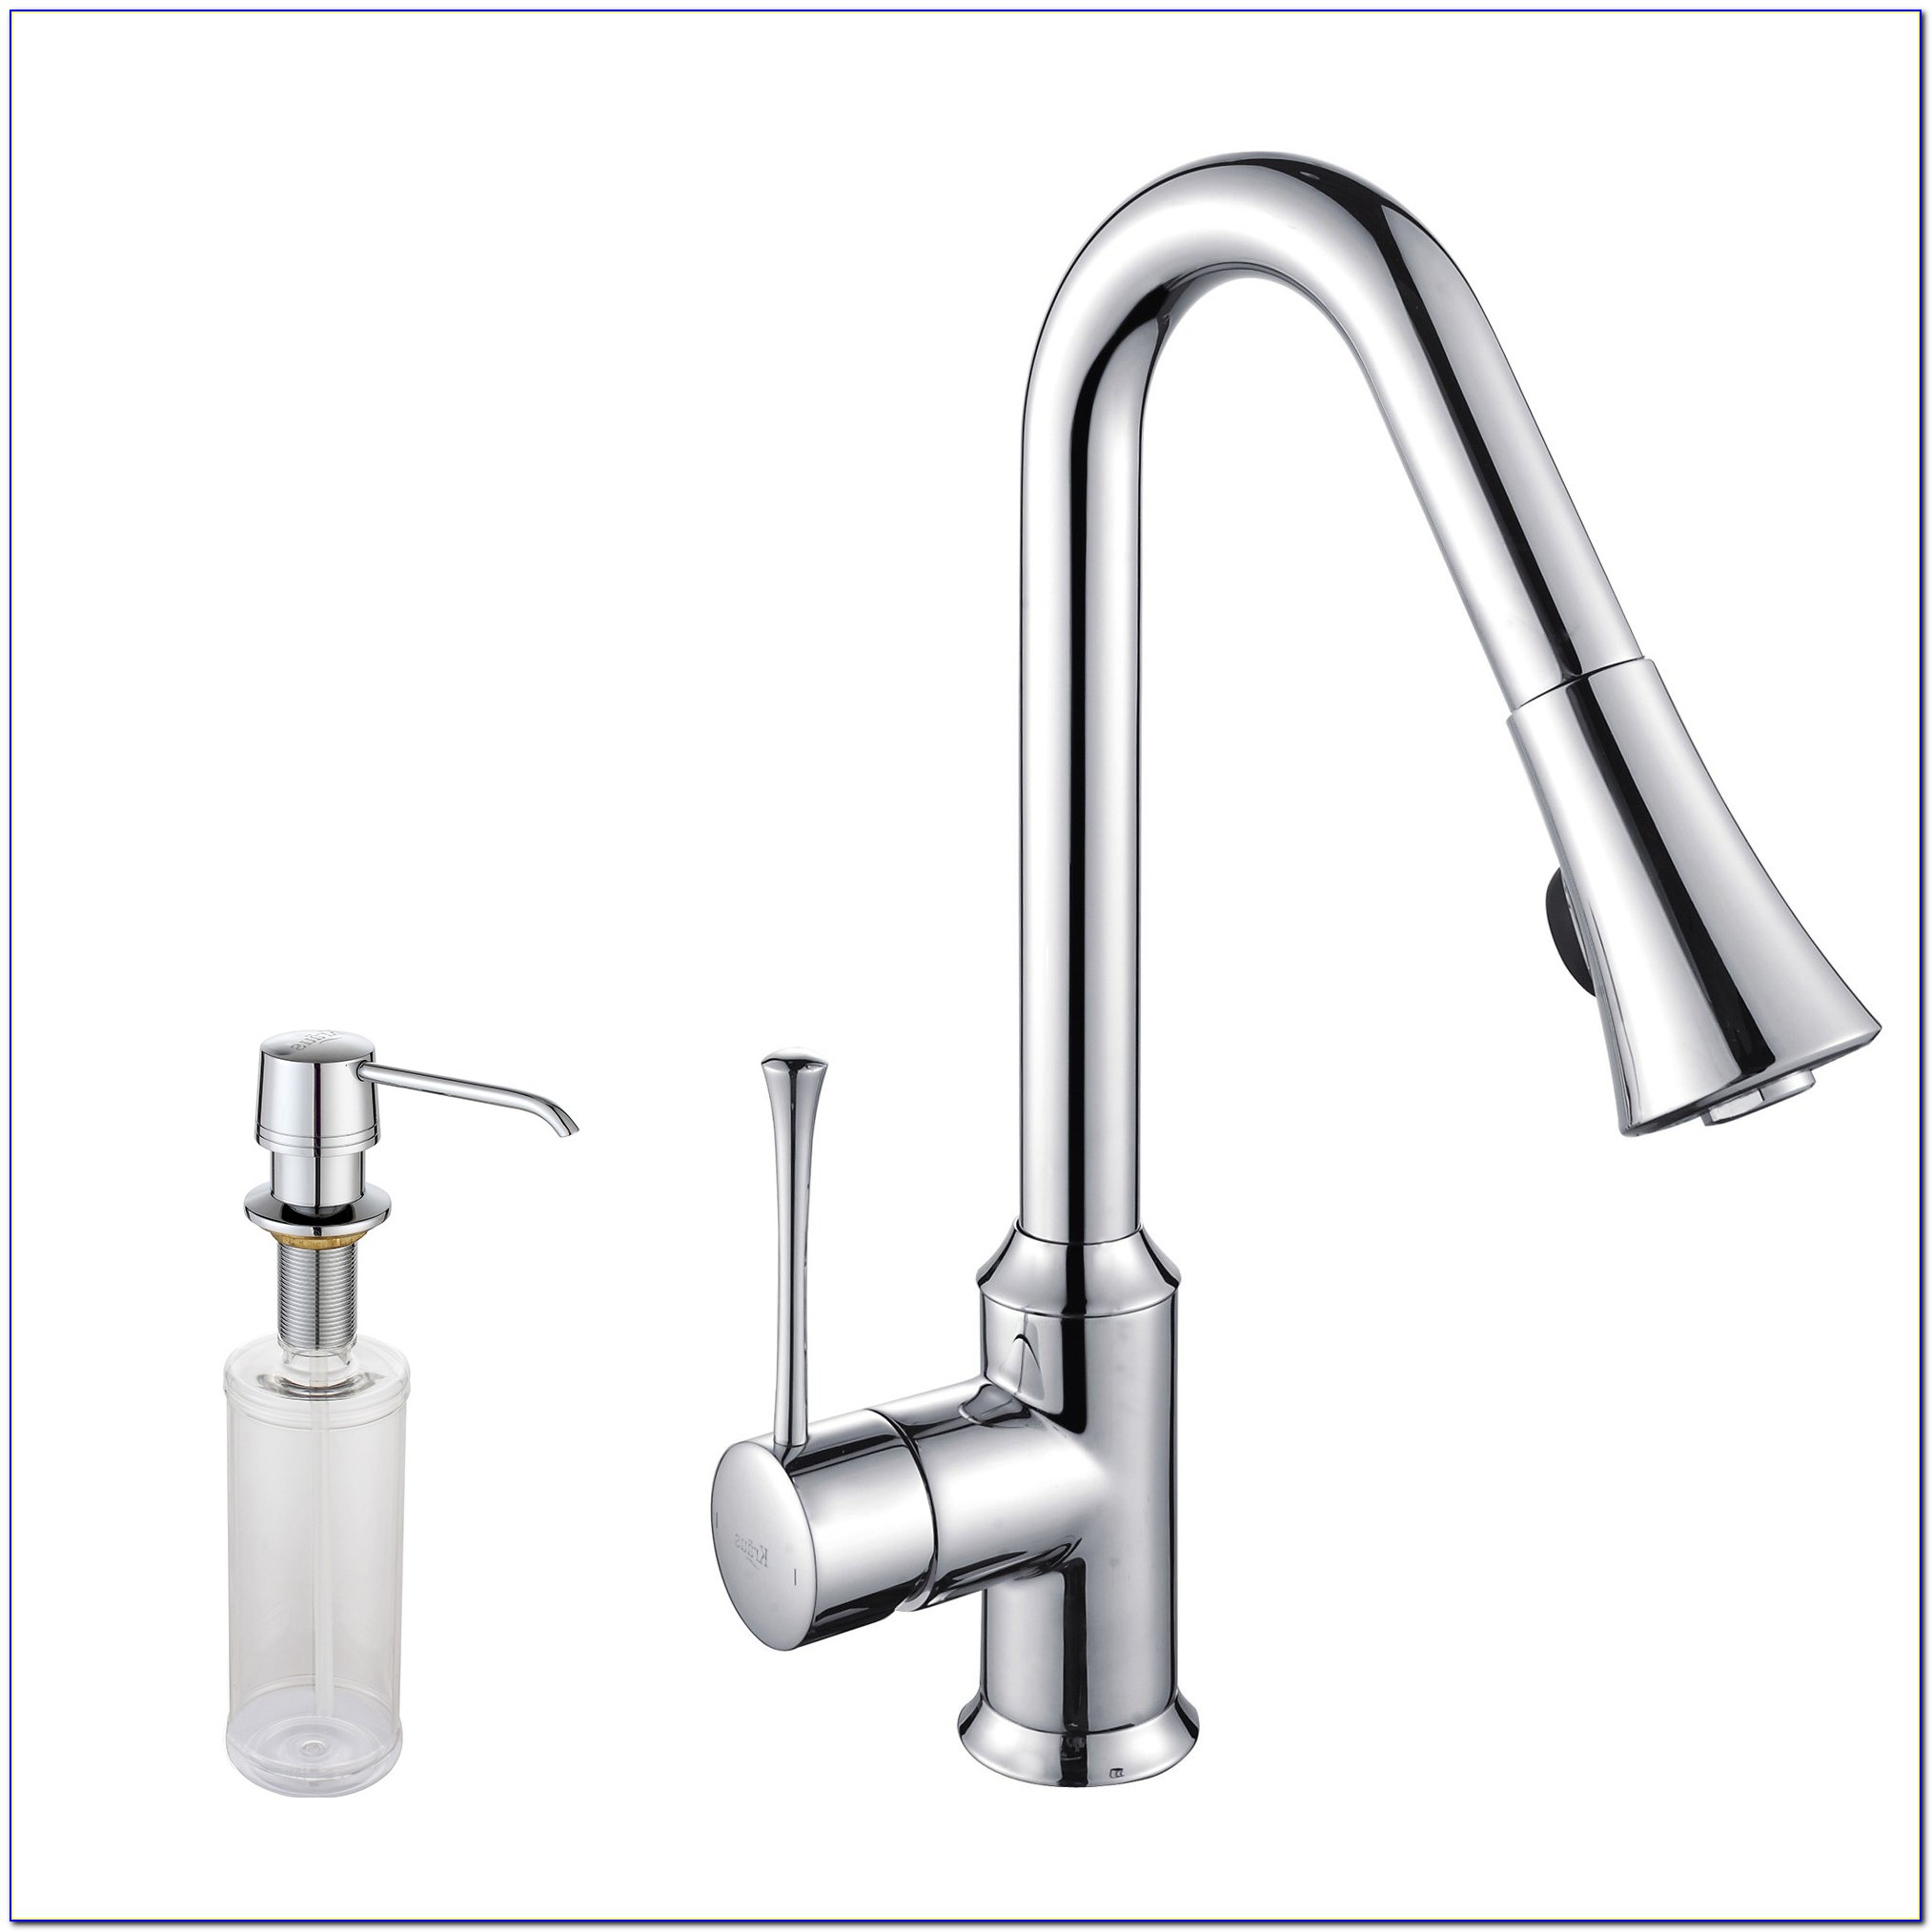 Moen Kitchen Faucet With Soap Dispenser